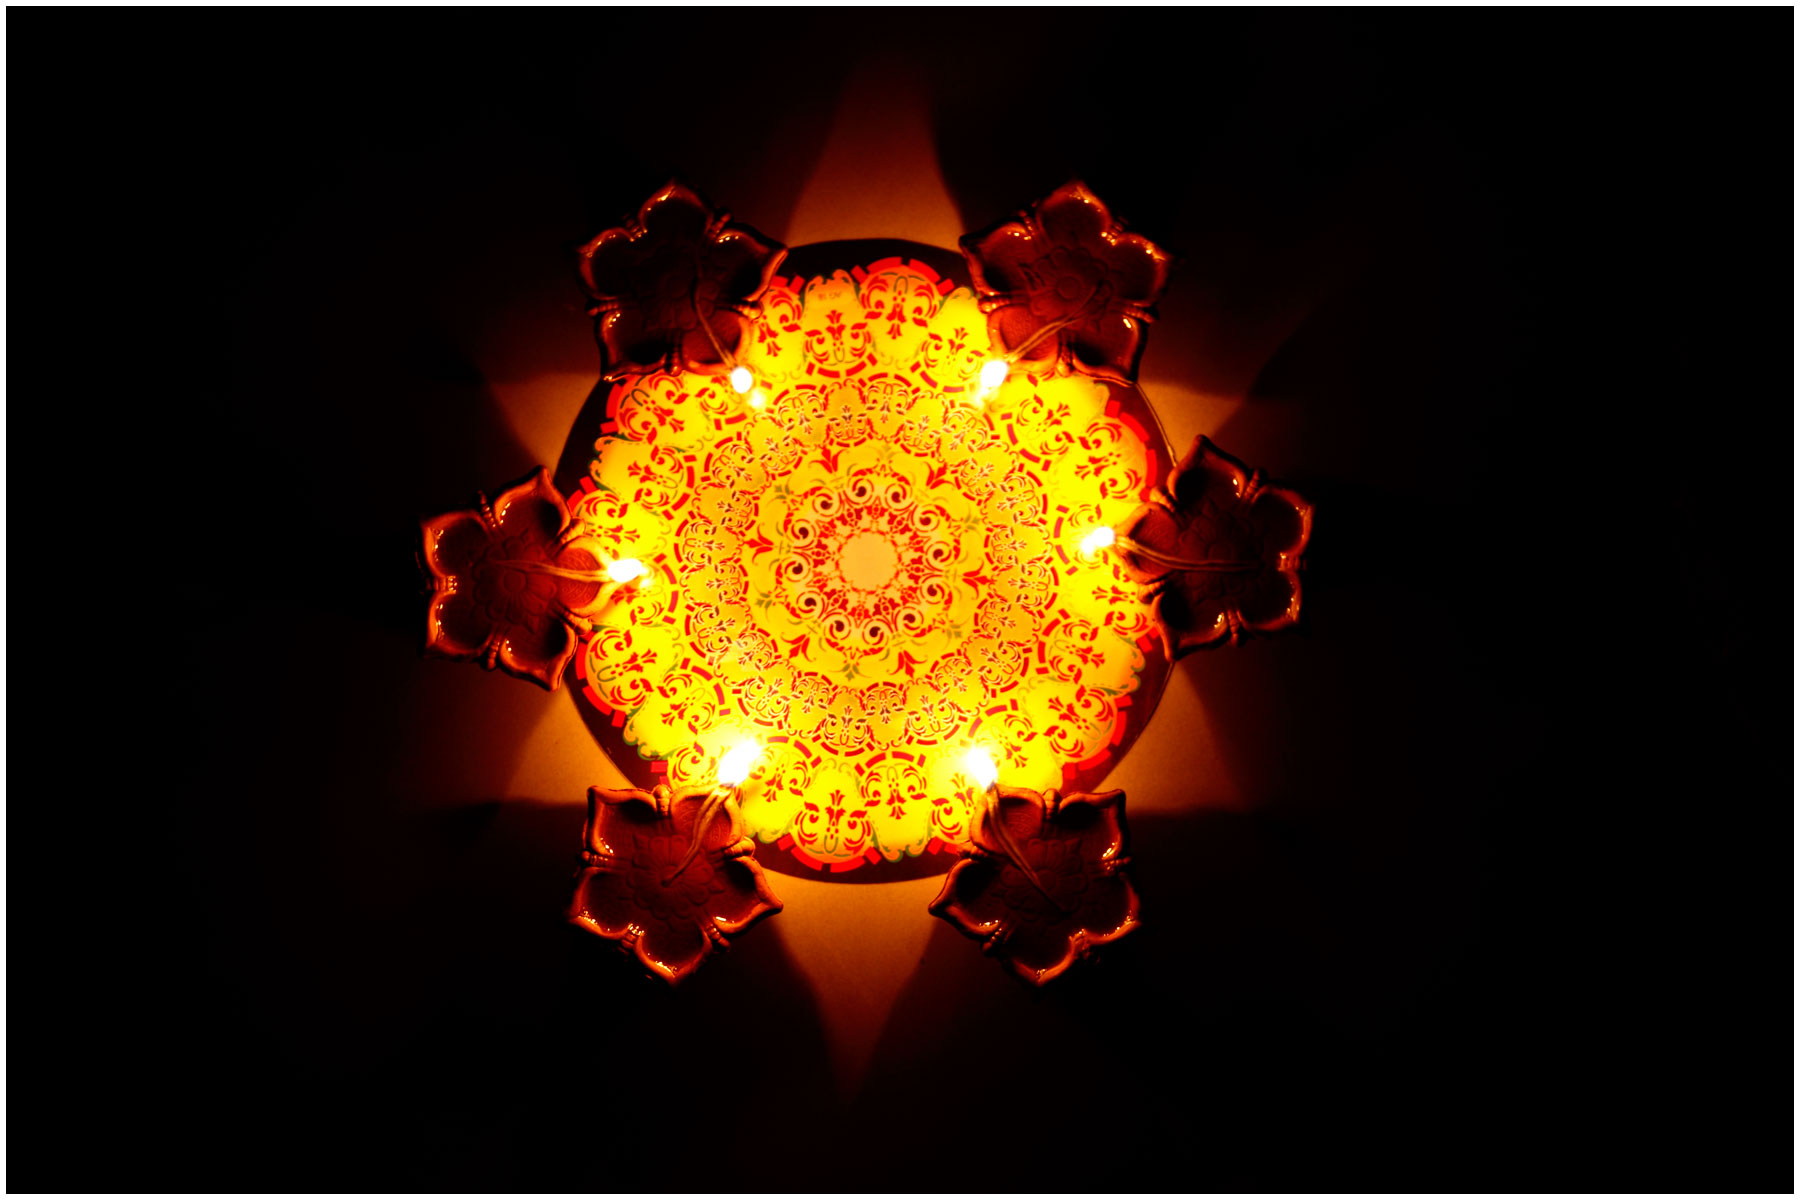 Hd Diwali Wallpapers Free 45 Beautiful Hd Diwali Images And Wallpaper To Feel The